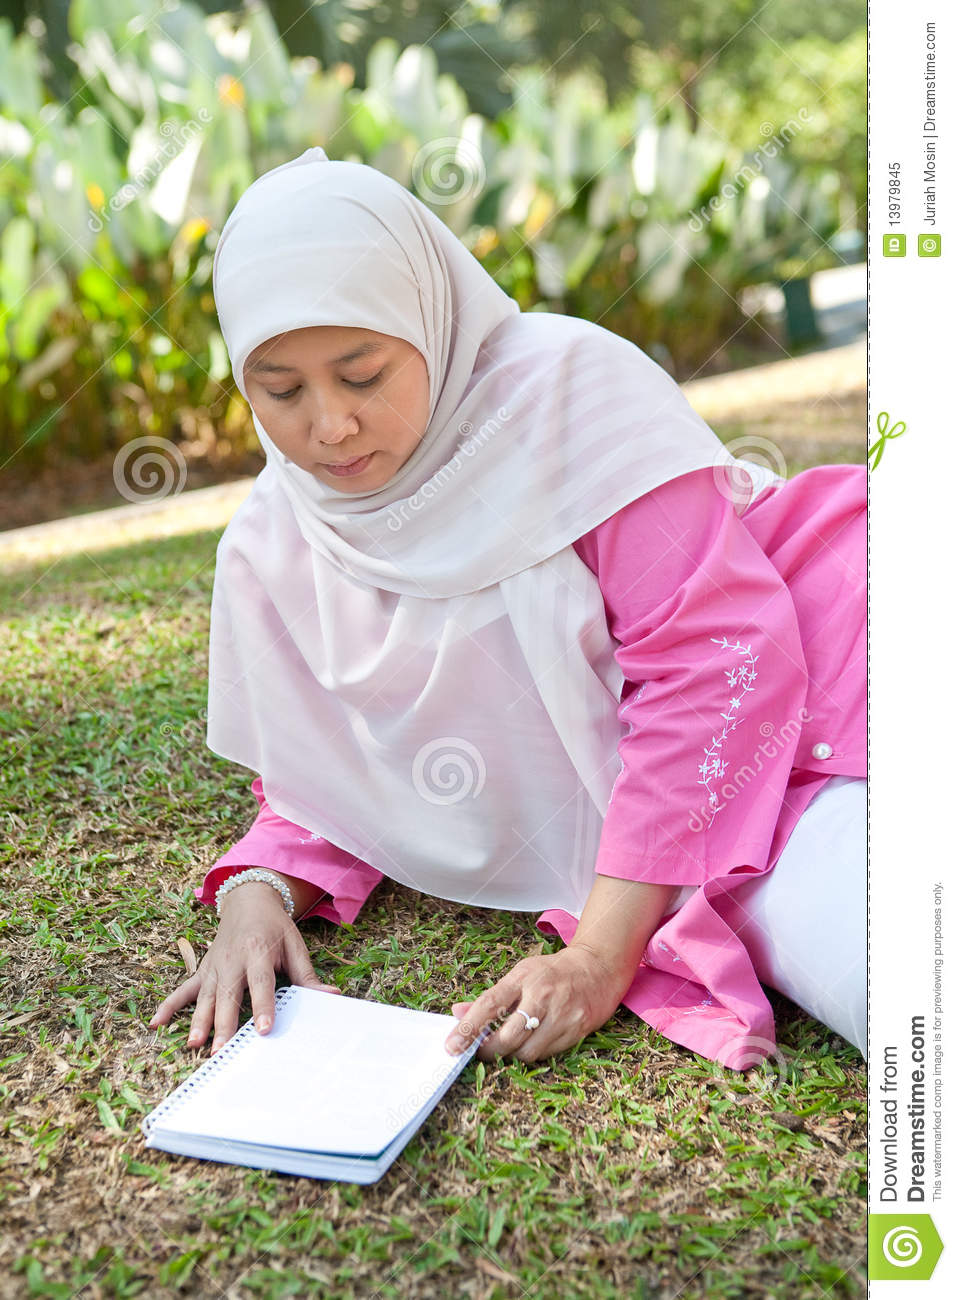 garden muslim single women Muslim women are one of the most talked-about groups in the world yet most of muslim women i know are very different from the stereotypes.